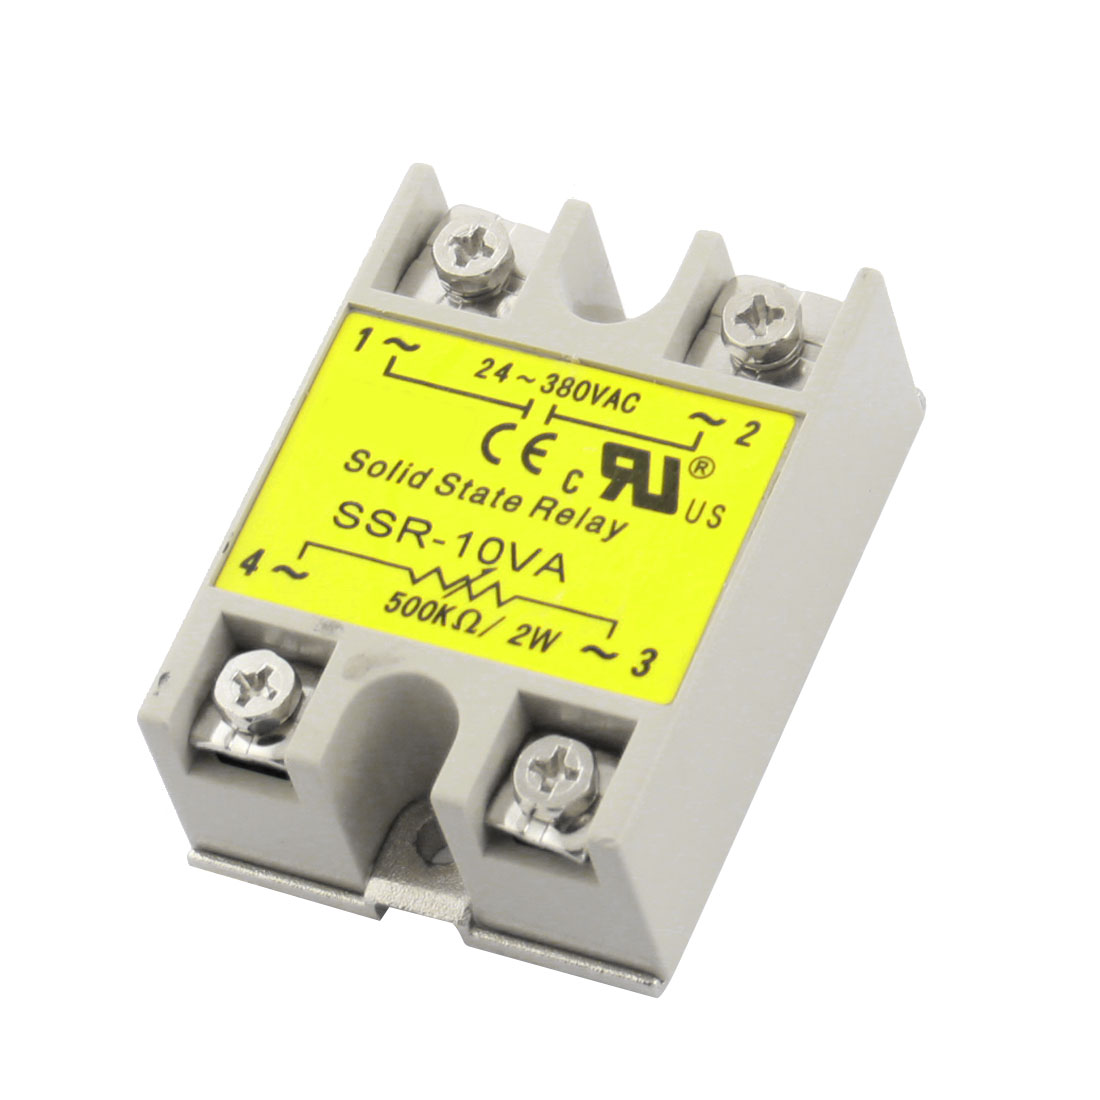 SSR-10VA AC24-380V Output 500K Ohm/2W Input 10VA Single Phase Resistance Type Adjustable Solid State Relay